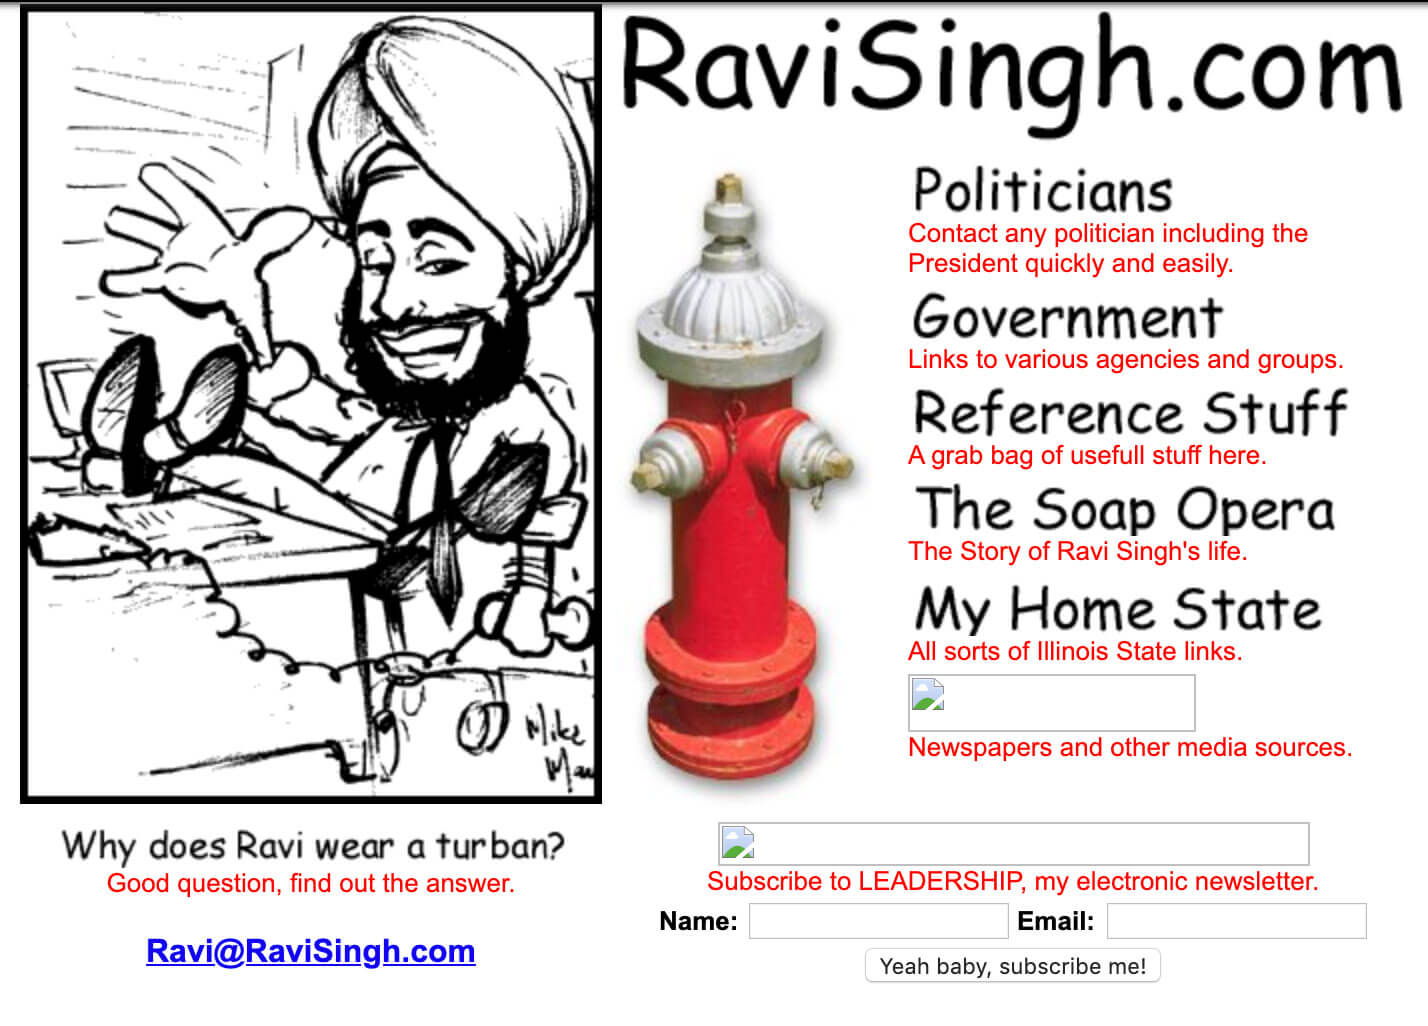 RaviSingh.com is launched